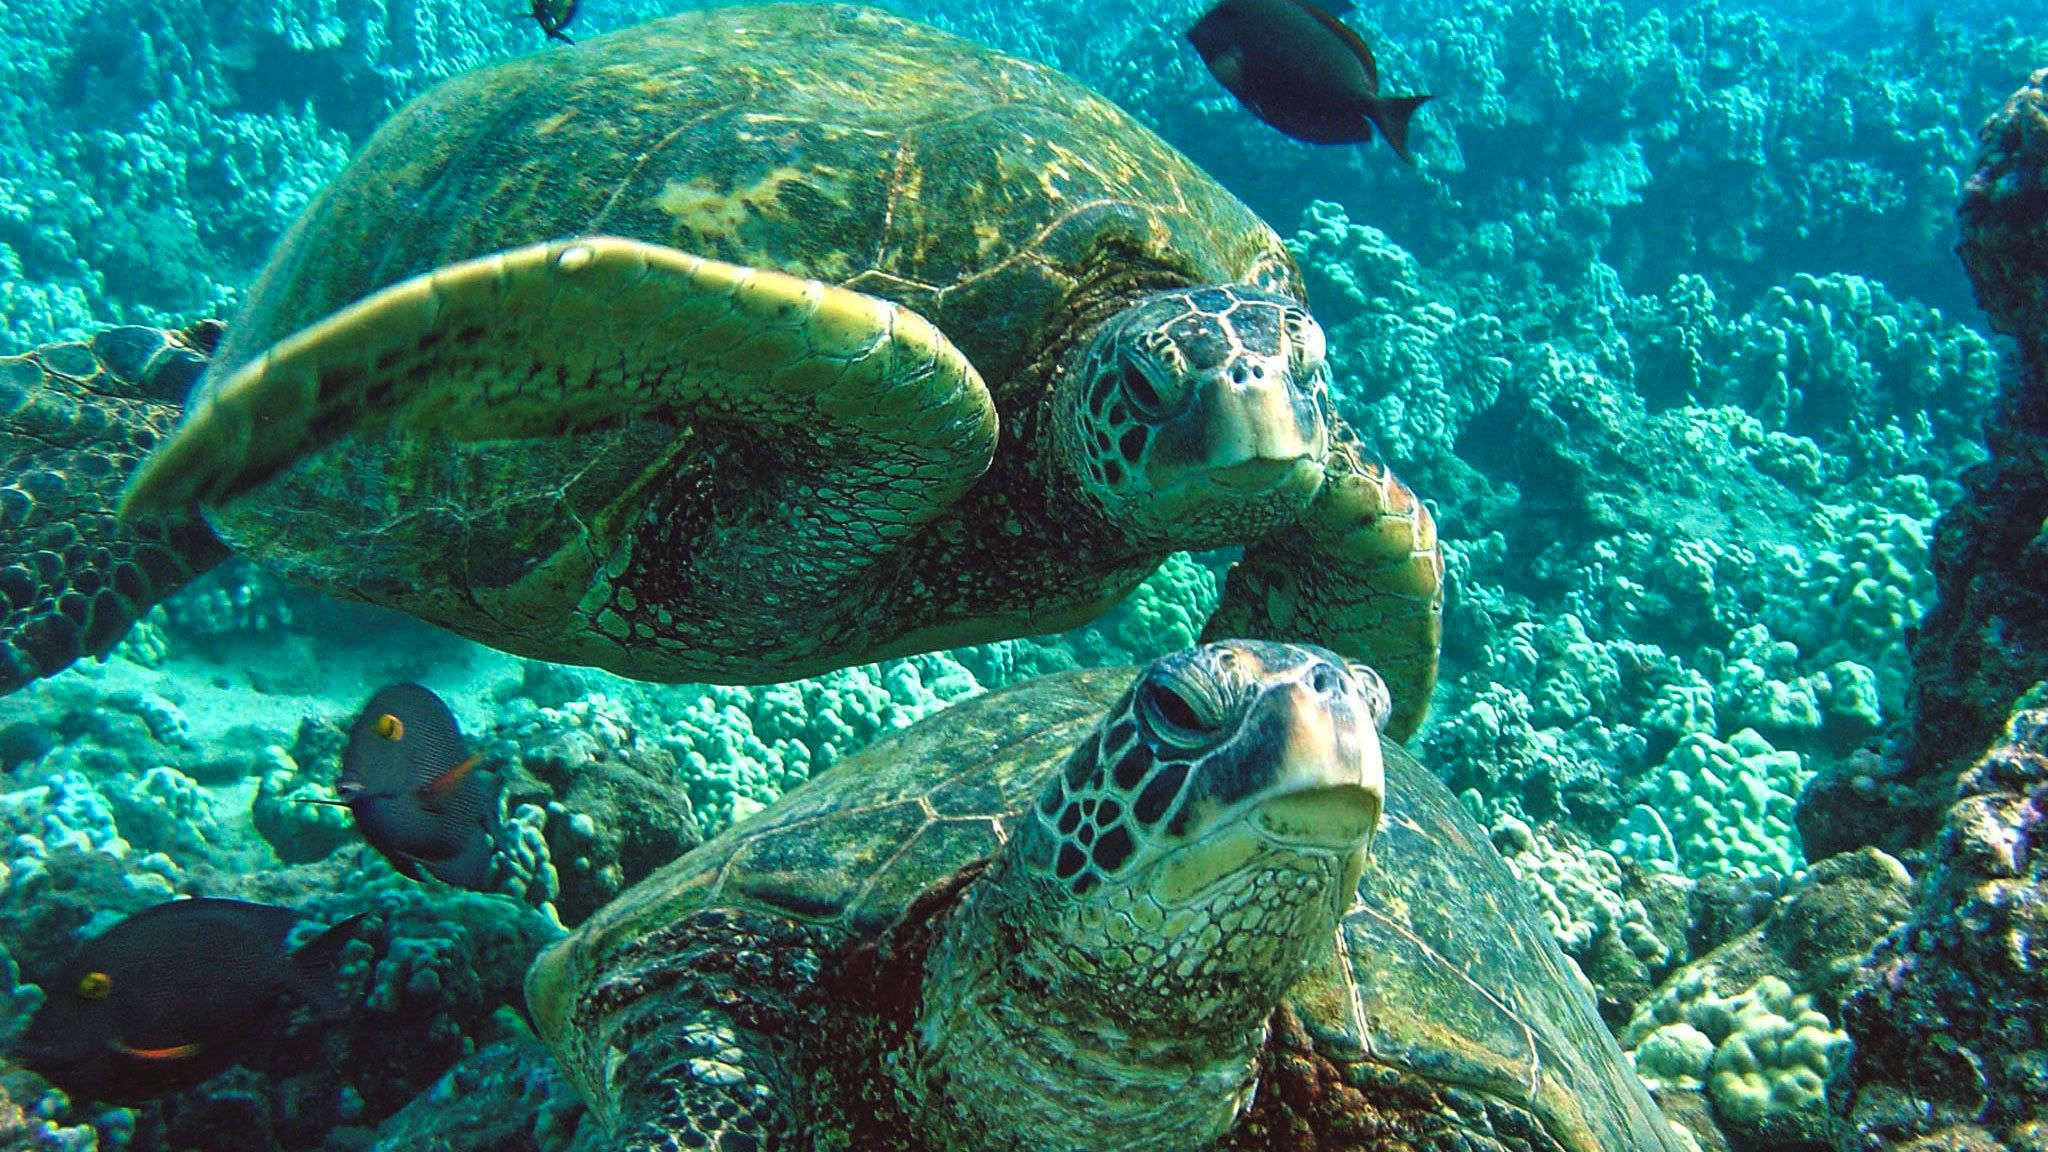 Close up of sea turtles underwater in Maui